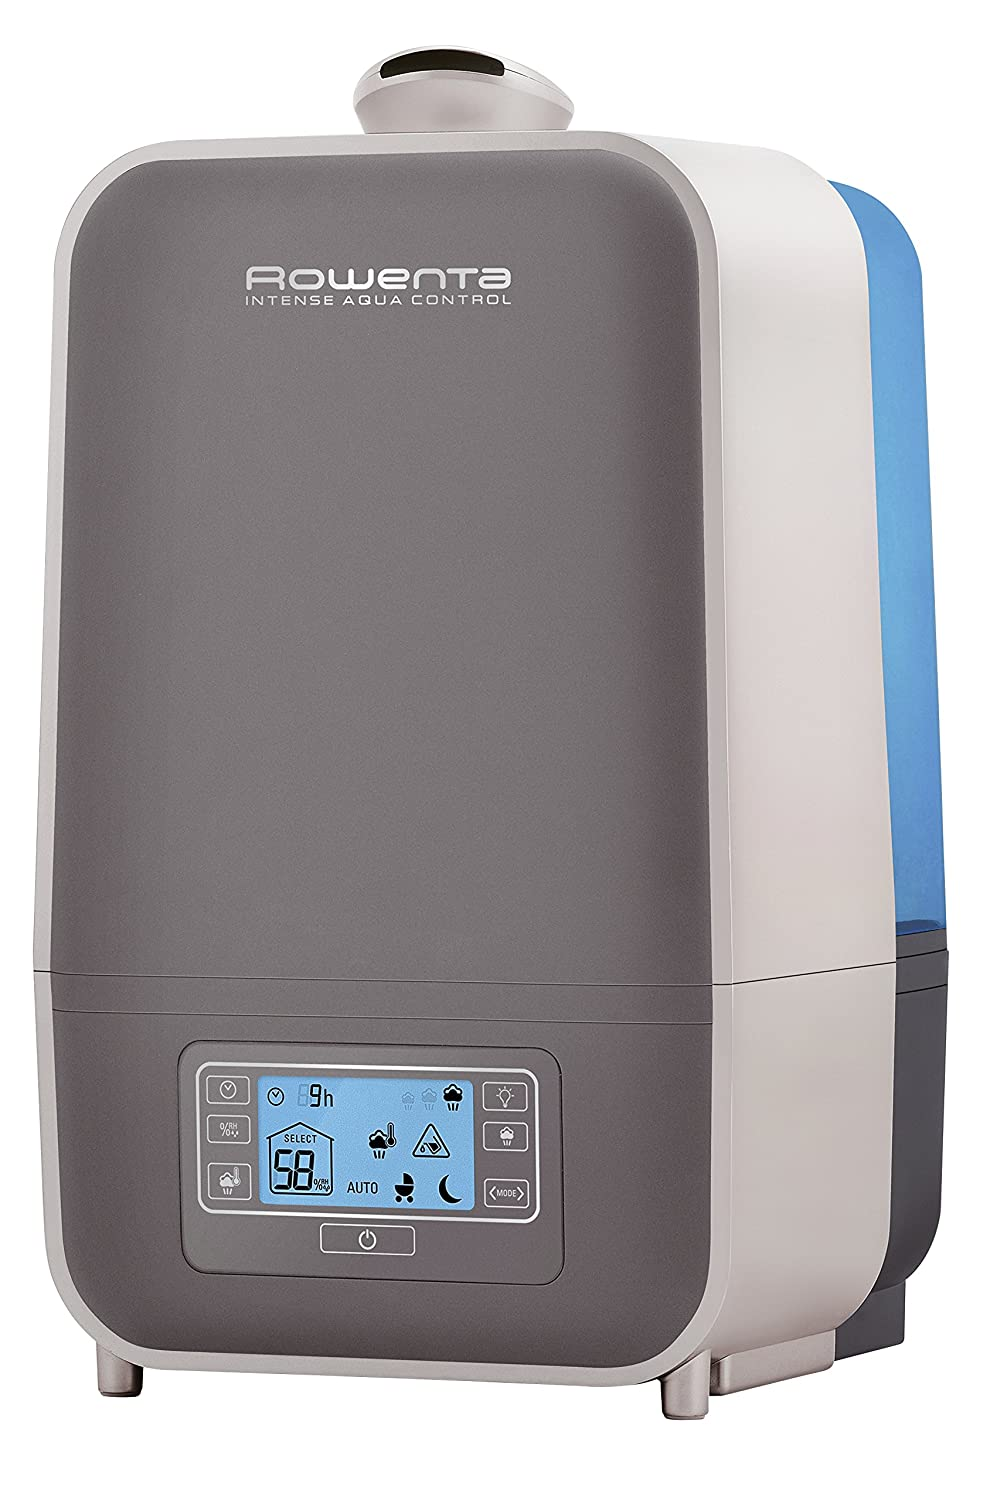 Best Humidifier For Bedroom: Top 10 Best Single Room Humidifiers